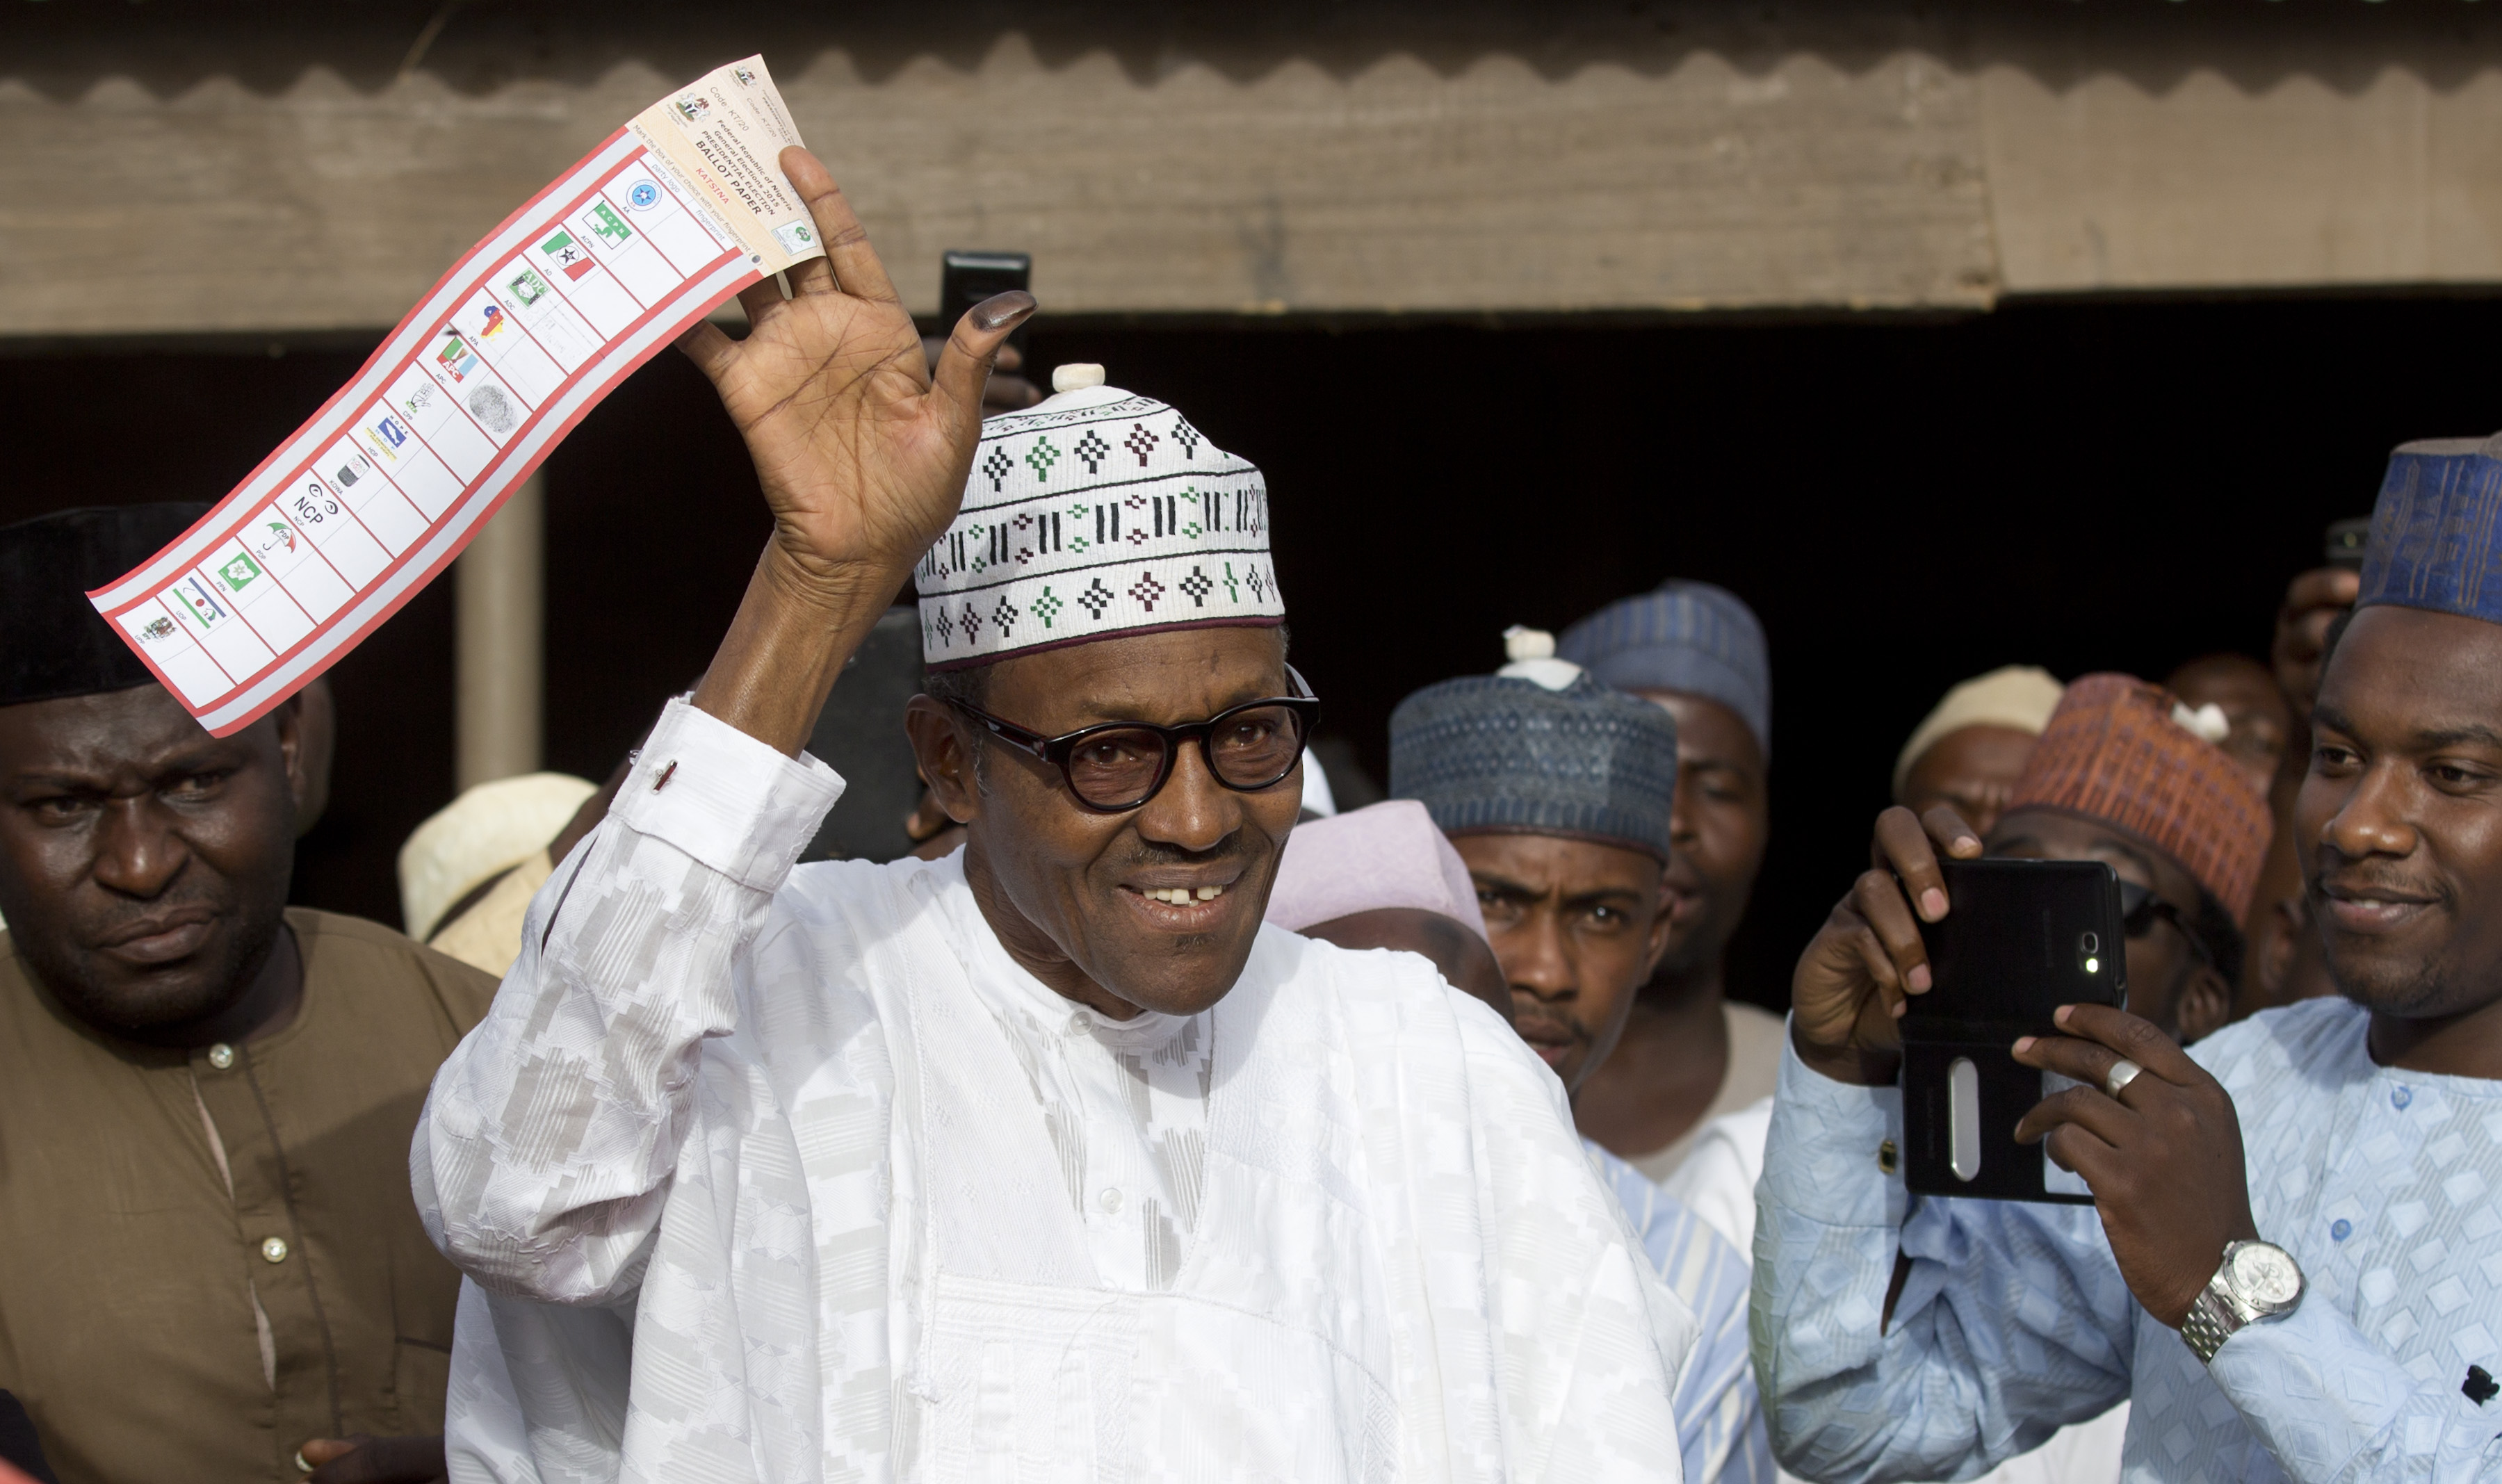 EDS NOTE: ALTERNATIVE CROP OF ABC114. Opposition candidate Gen. Muhammadu Buhari holds his ballot paper in the air before casting his vote in his home town of Daura, northern Nigeria Saturday, March 28, 2015. Nigerians went to the polls Saturday in presidential elections which analysts say will be the most tightly contested in the history of Africa's richest nation and its largest democracy. (AP Photo/Ben Curtis)